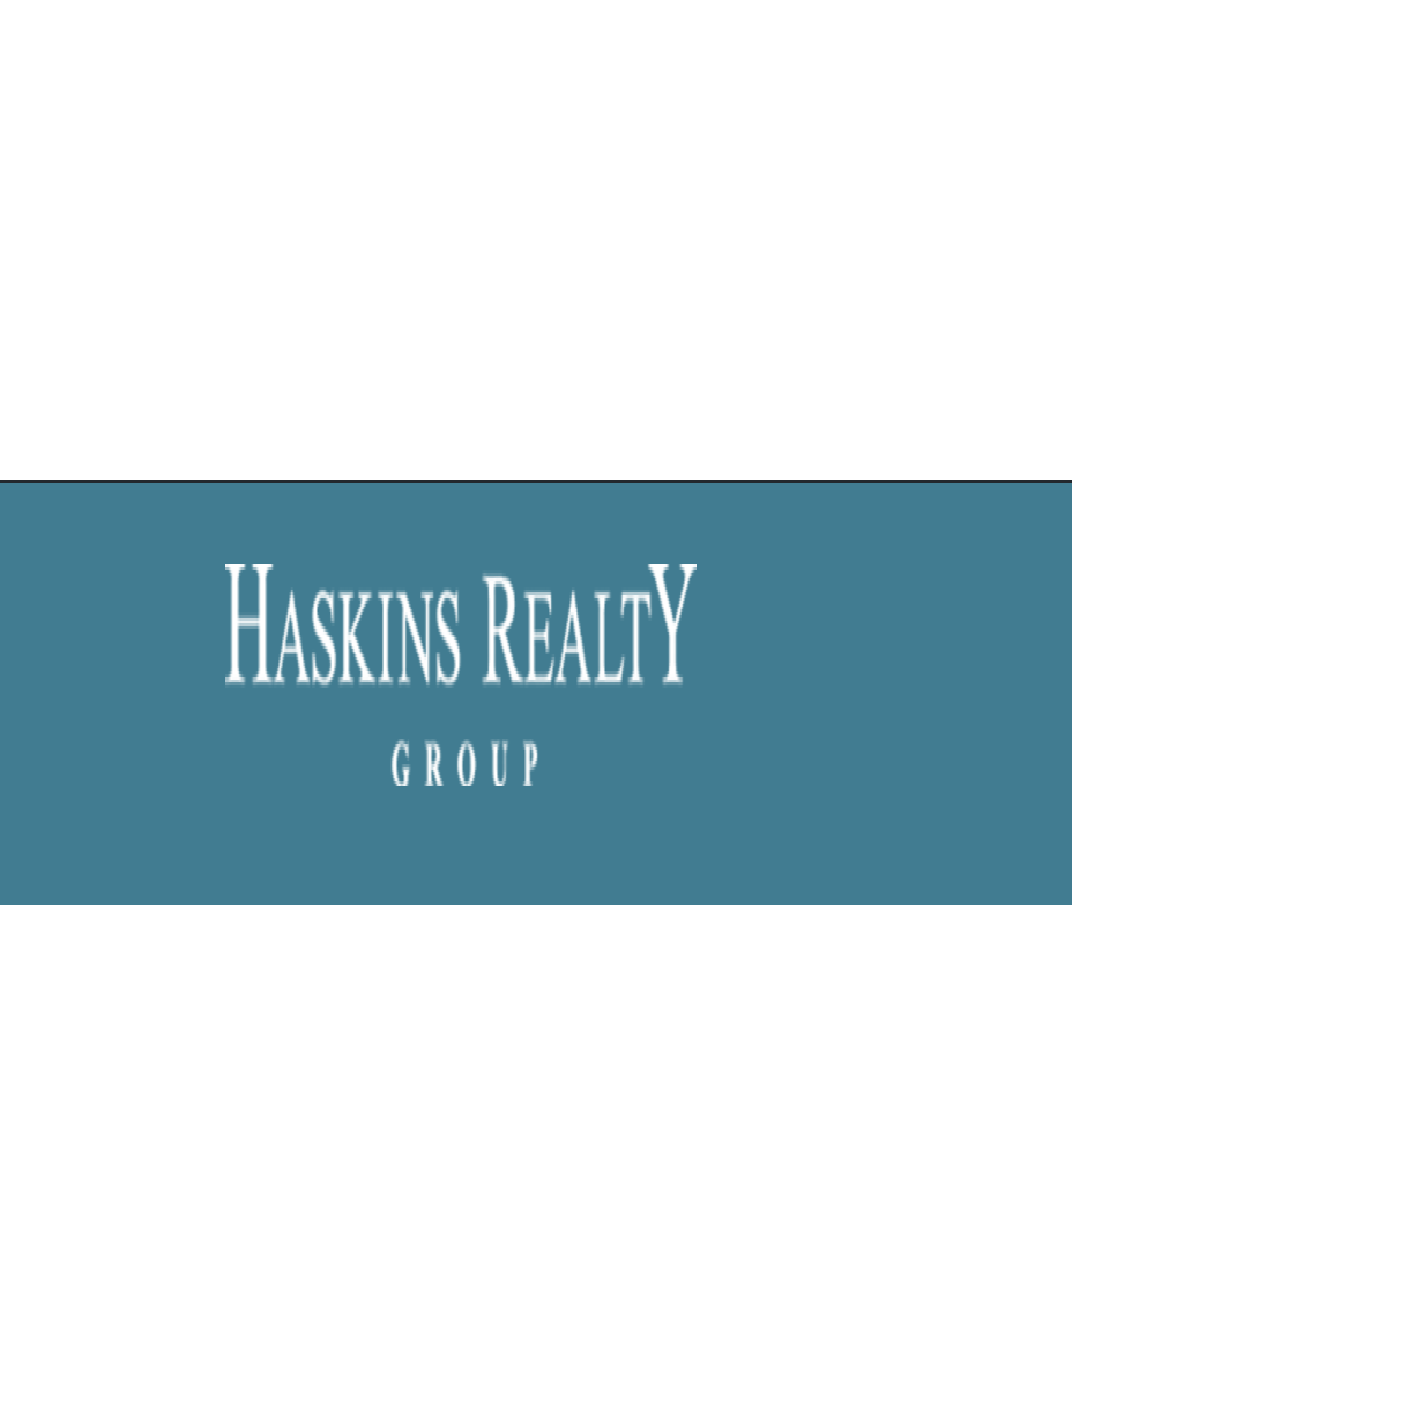 Haskins Realty